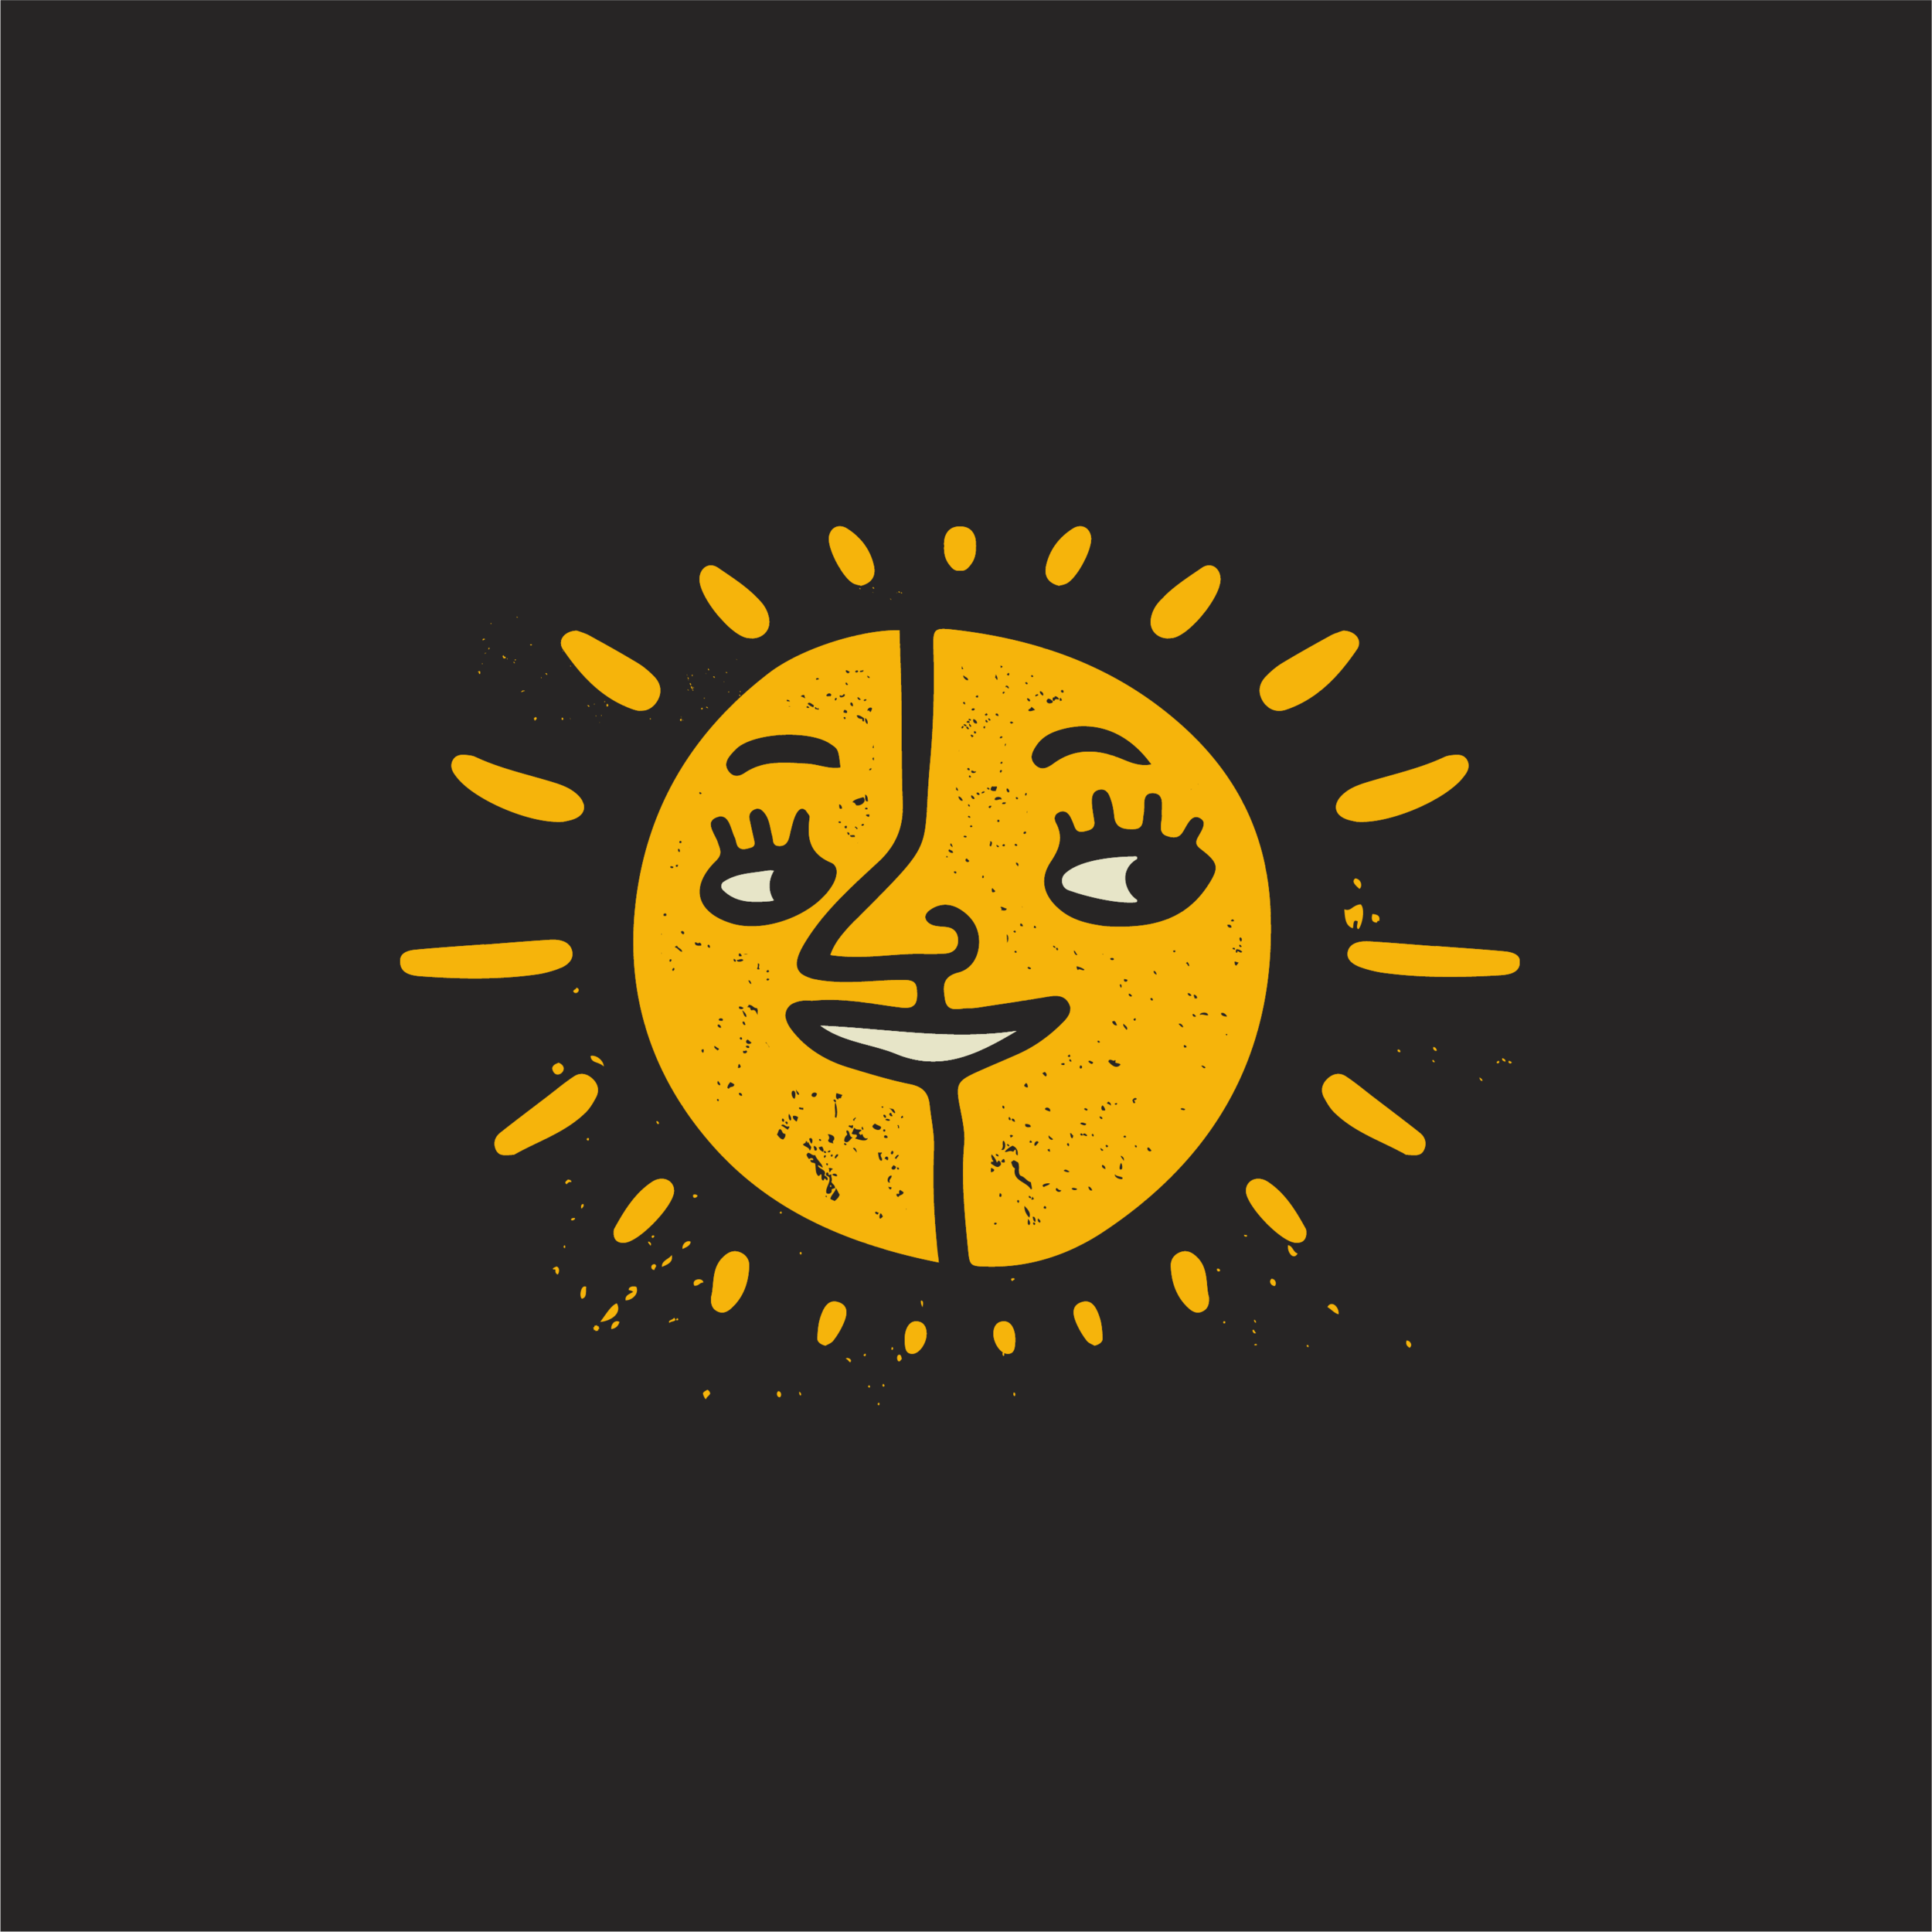 domiawards - sun - color.png